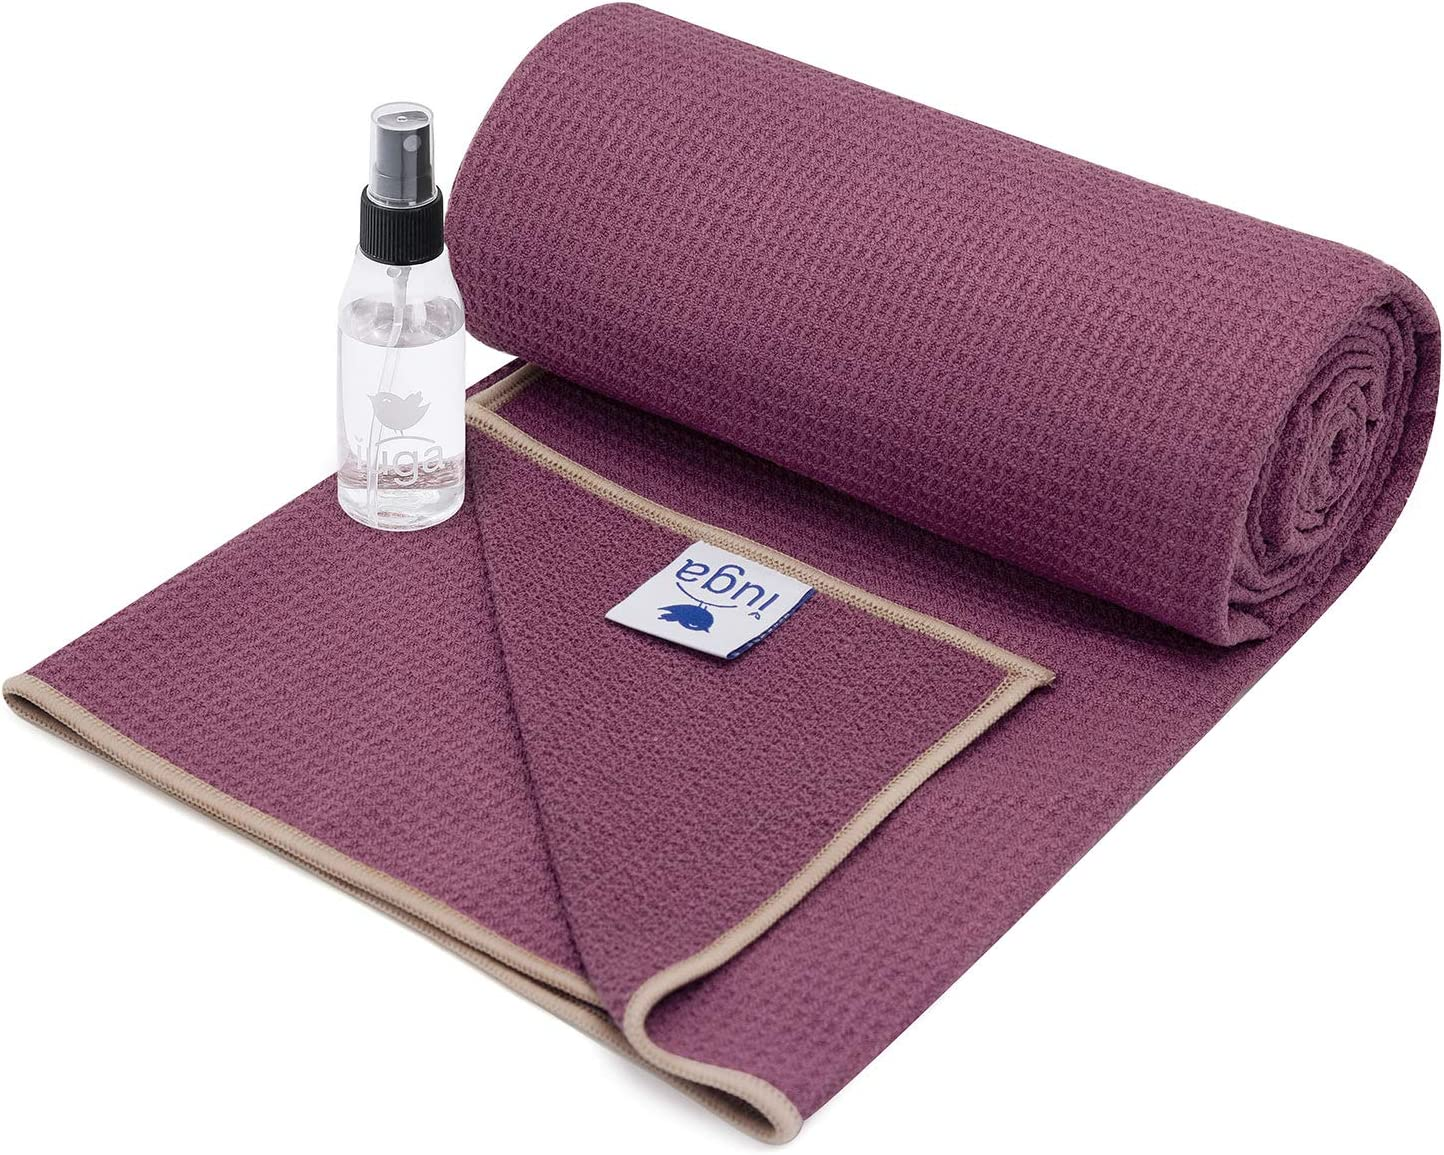 IUGA Yoga Towel for Hot Yoga, Non Slip Silicone Bottom and Stickyfiber for Ultra Grip, Super Soft, Sweat Absorbent Hot Yoga Towel for Pilates and ...